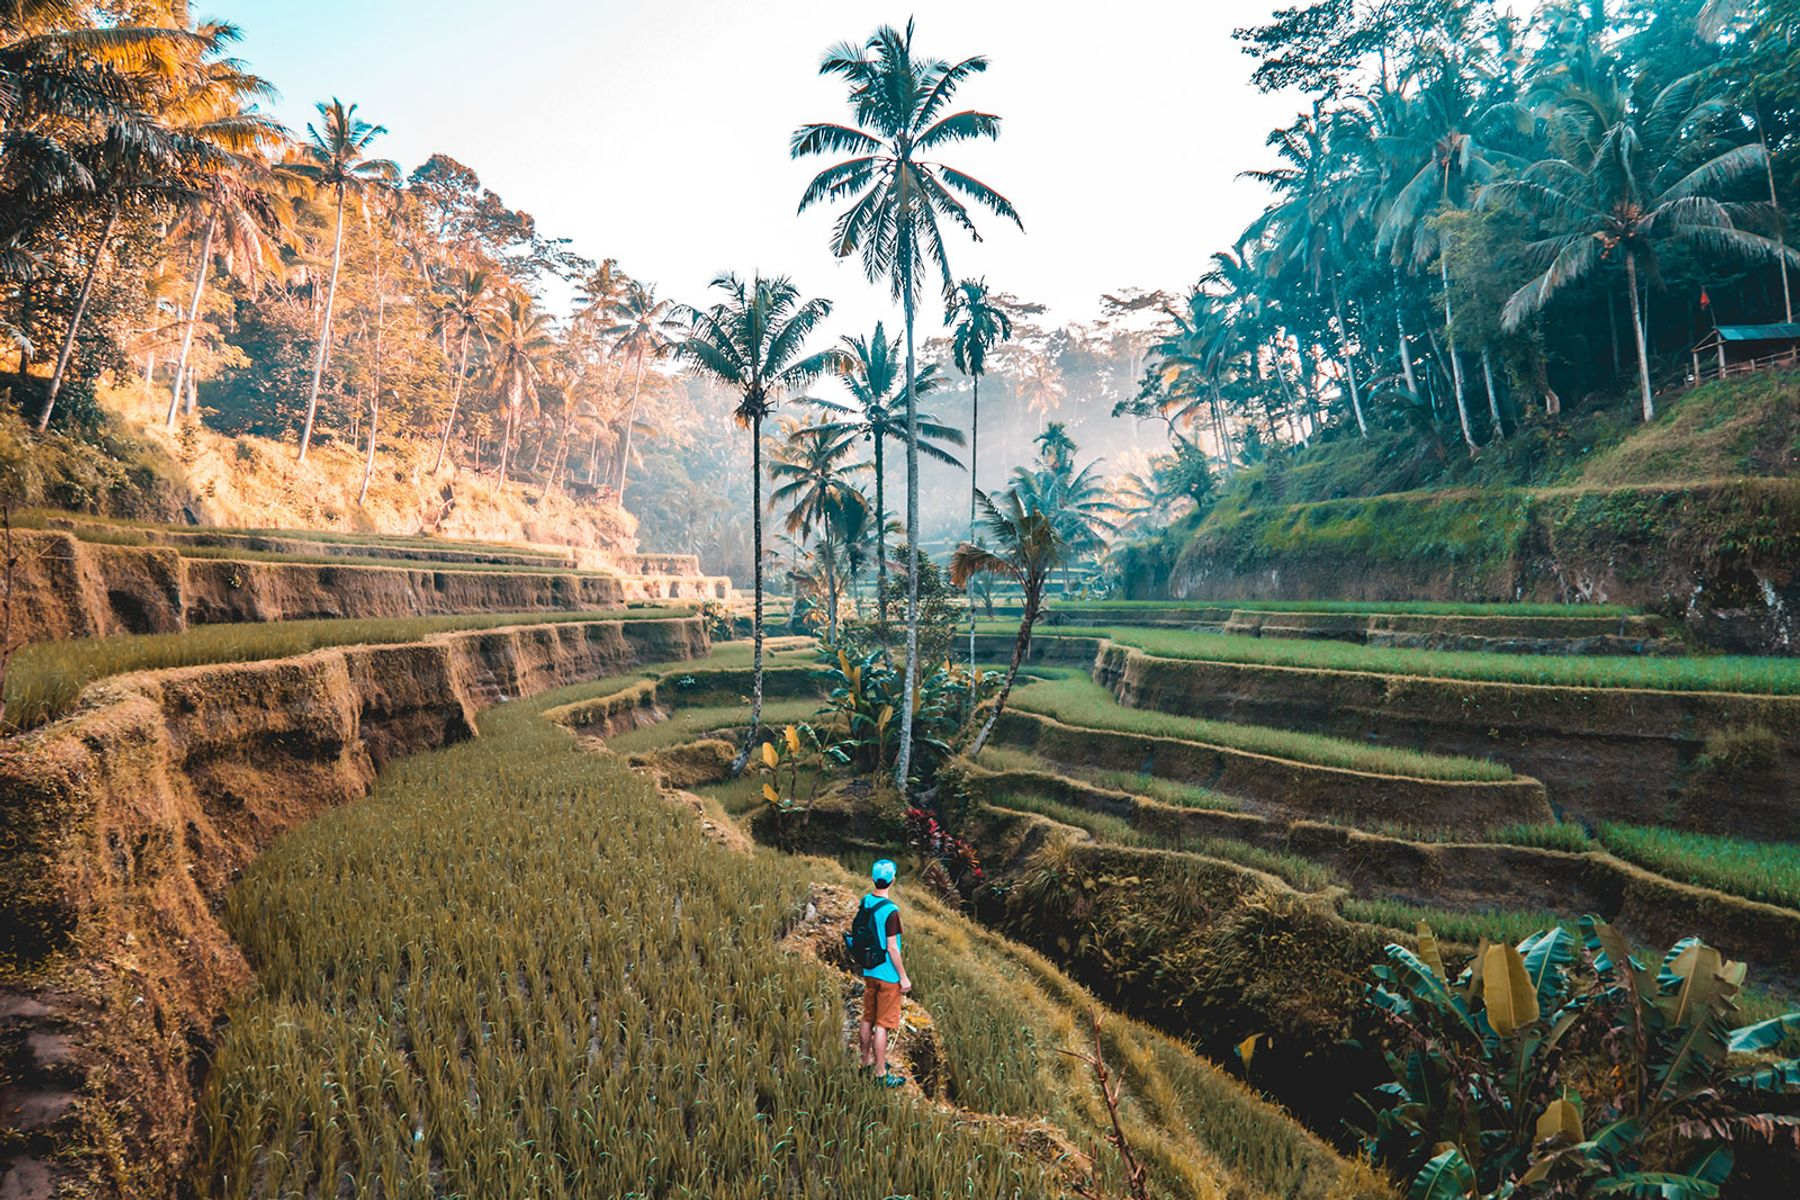 Iconic rice fields in Bali